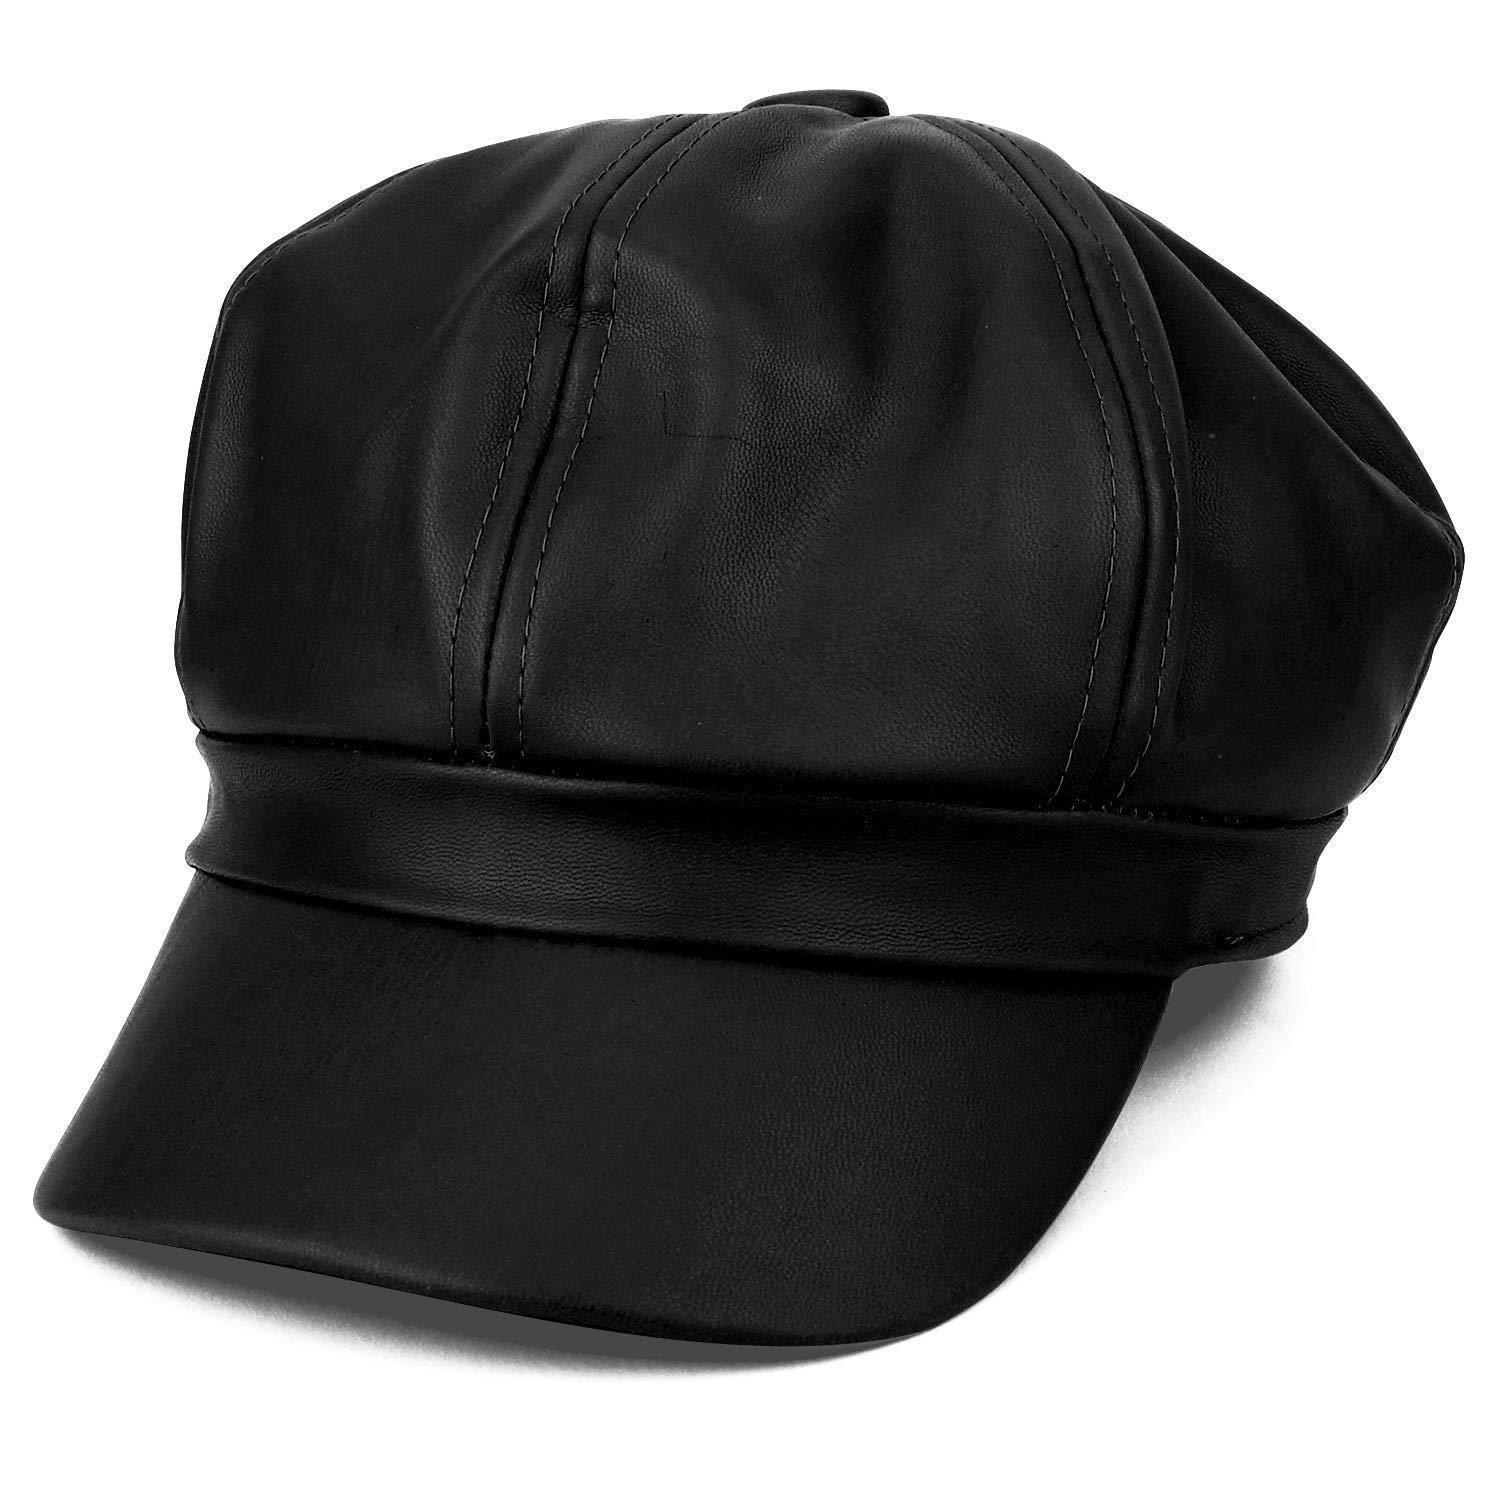 Cheap Newsboy Cap Leather, find Newsboy Cap Leather deals on line at